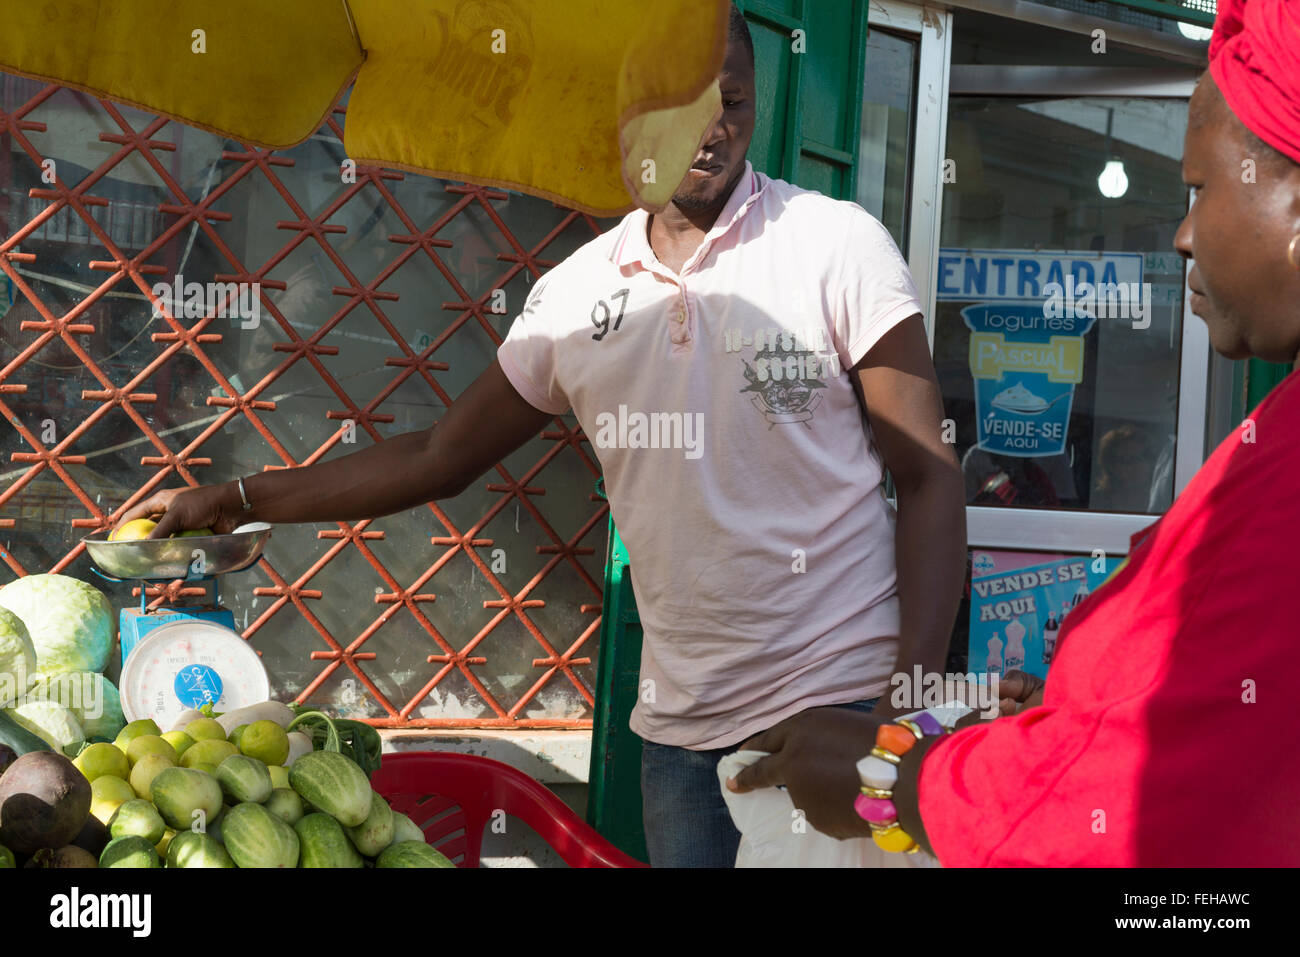 A market trader weighing lemons for a woman in the Guinea Bissau captial city of Bissau - Stock Image